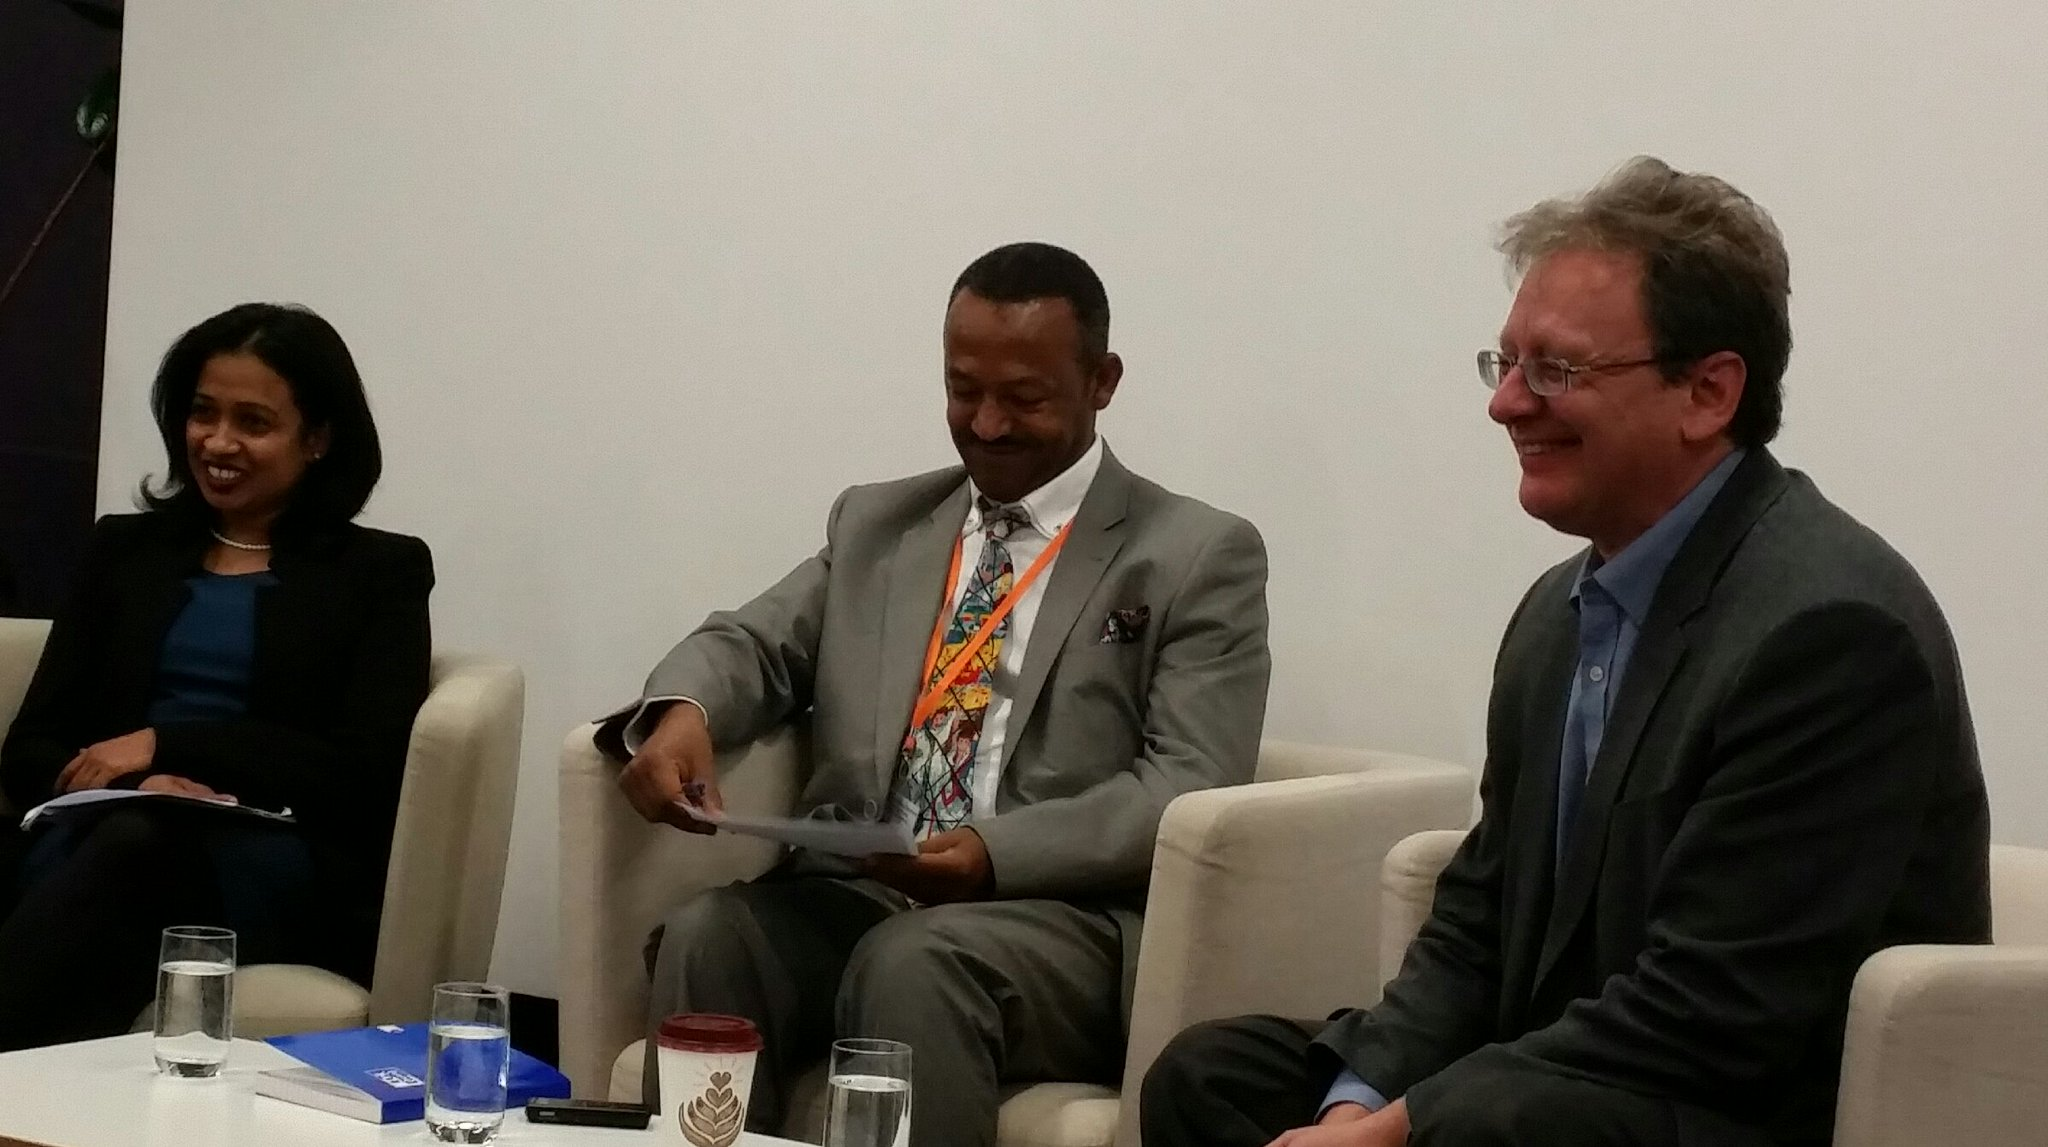 In conversation with the chair of the Least Developed Countries Group and @AchalaC on increasing climate ambition at @IIED. #LDCchair https://t.co/6SNGgVC3Aw